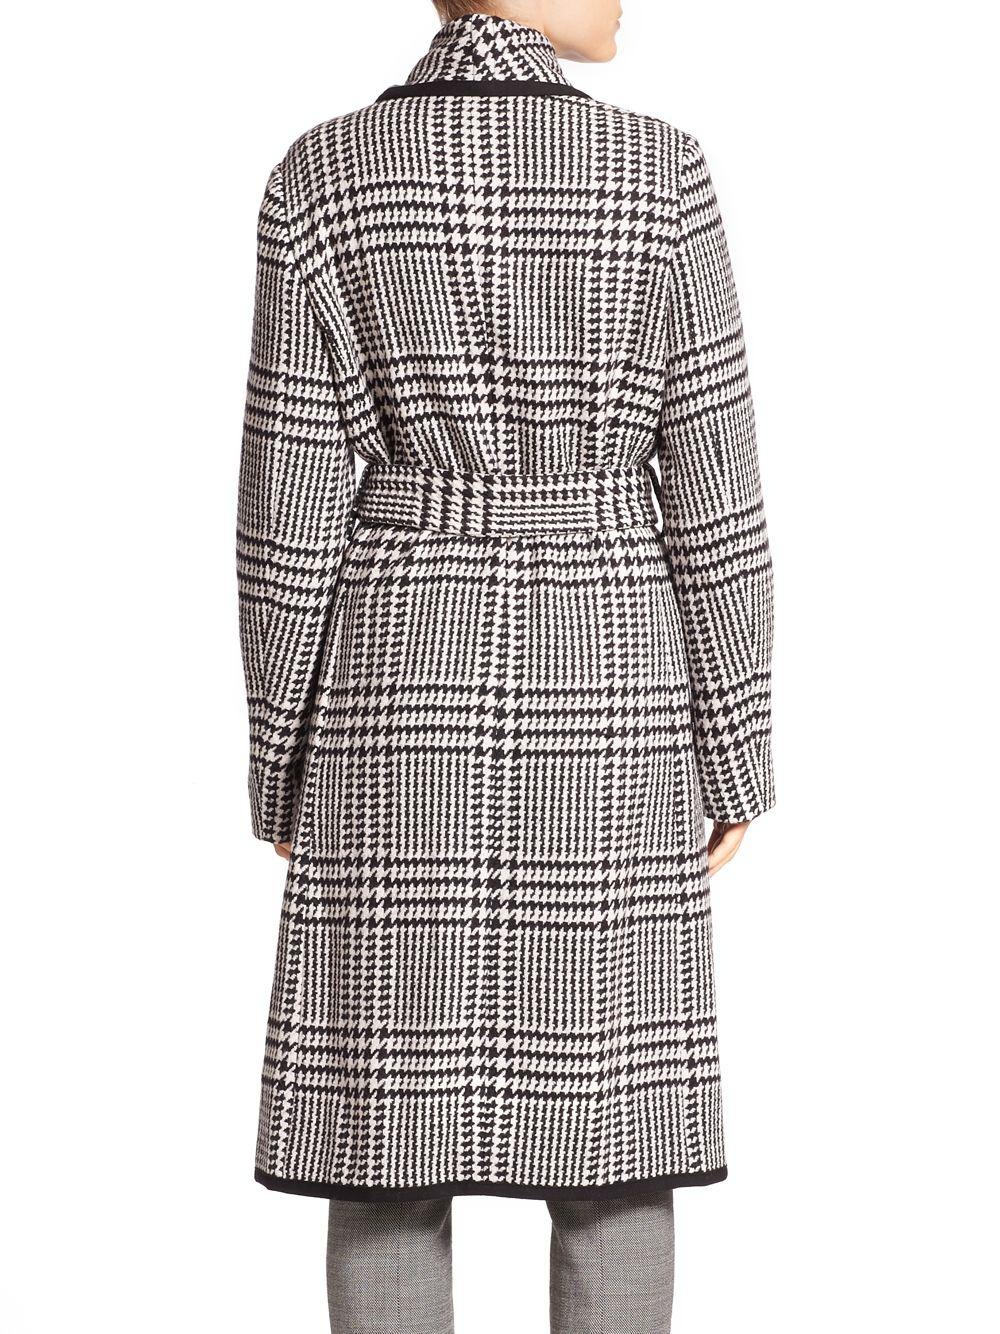 300e6319c0112 Lyst - ESCADA Houndstooth Belted Wool Coat in Black